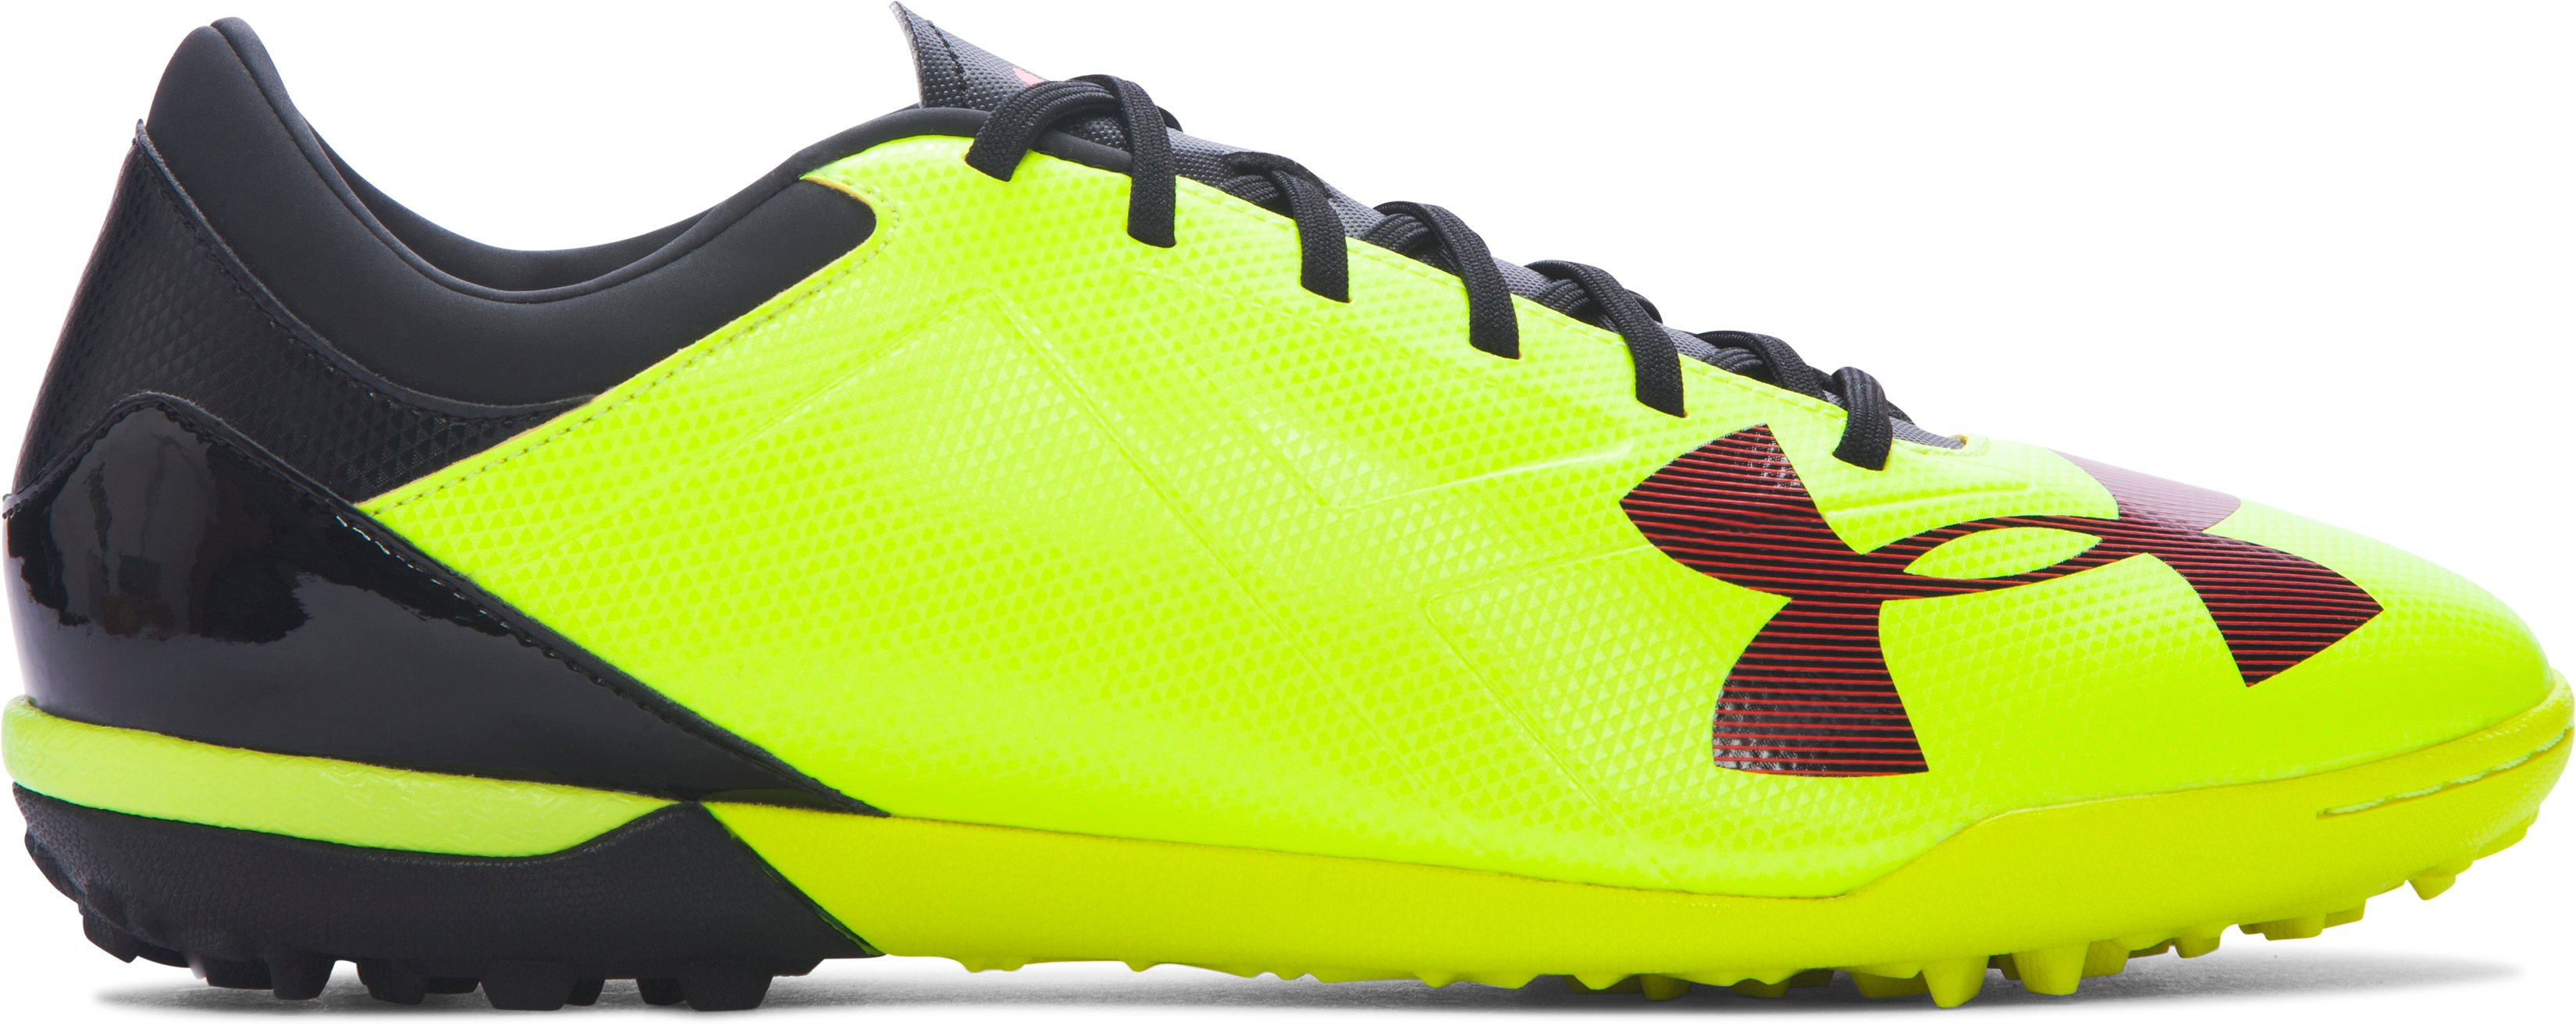 Men's UA Spotlight TR Soccer Shoes, High-Vis Yellow